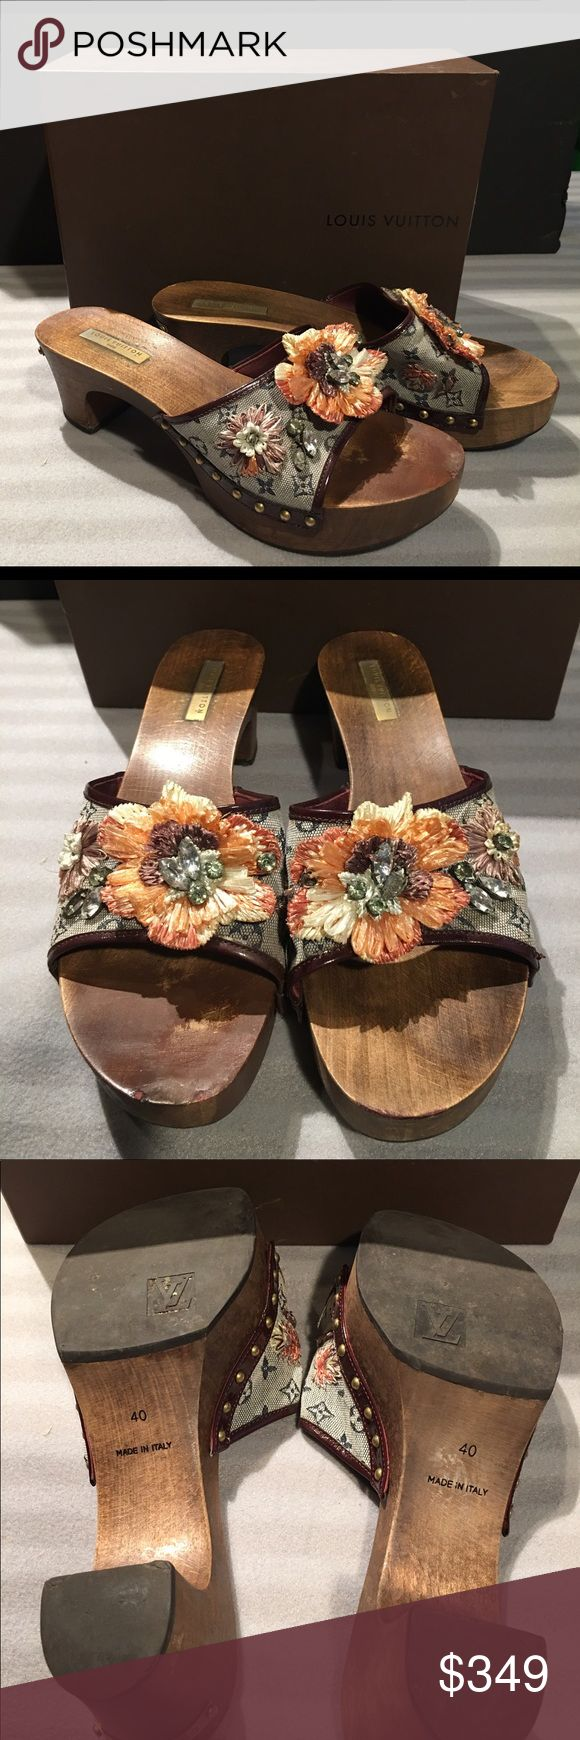 Authentic Louis Vuitton Monogram Wooden Pumps 40 With wear. Missing one stone. See pictures. Fits tight. Comes with LV box! Louis Vuitton Shoes Platforms